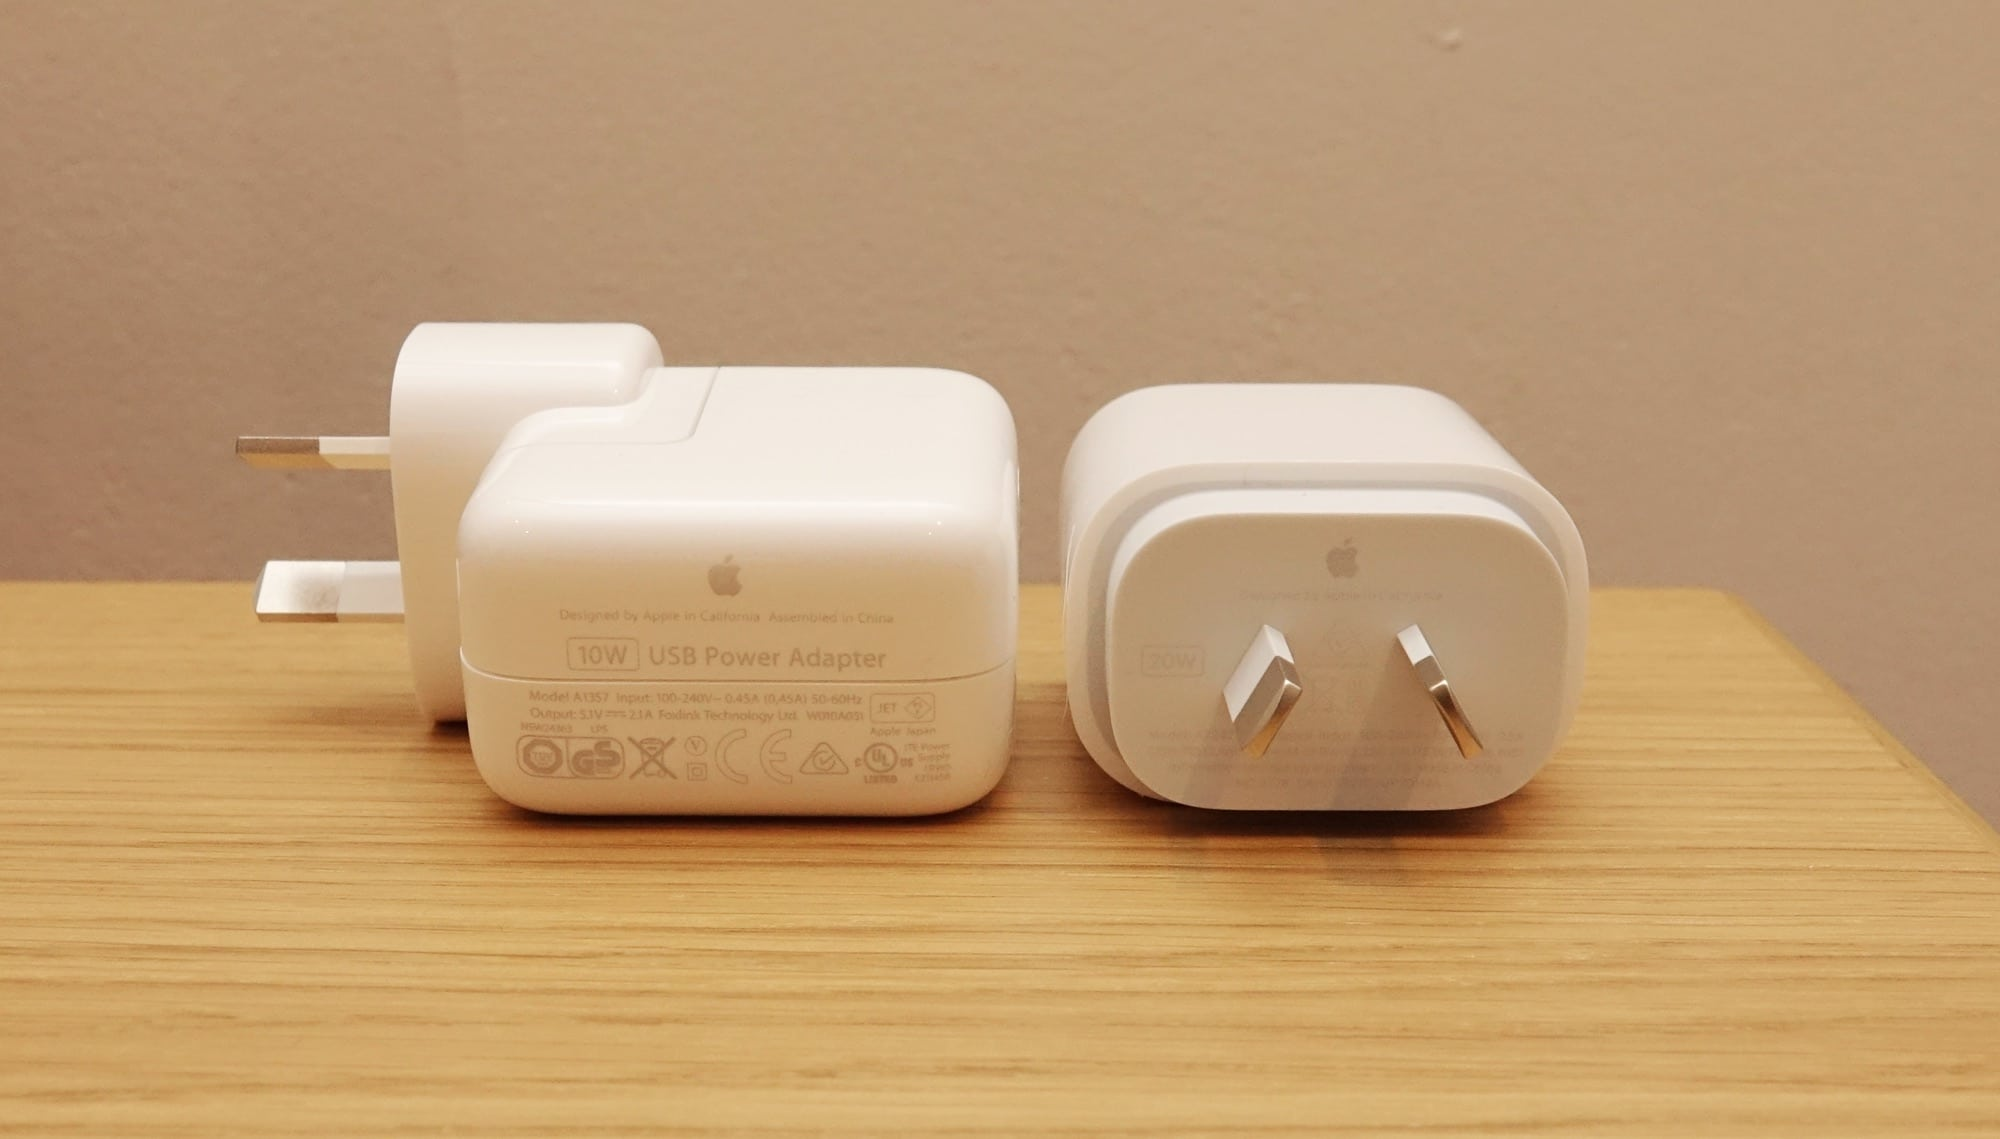 The difference in iPad charge connectors: the 10W with the iPad 7th gen (left) vs the 20W with the iPad 8th gen